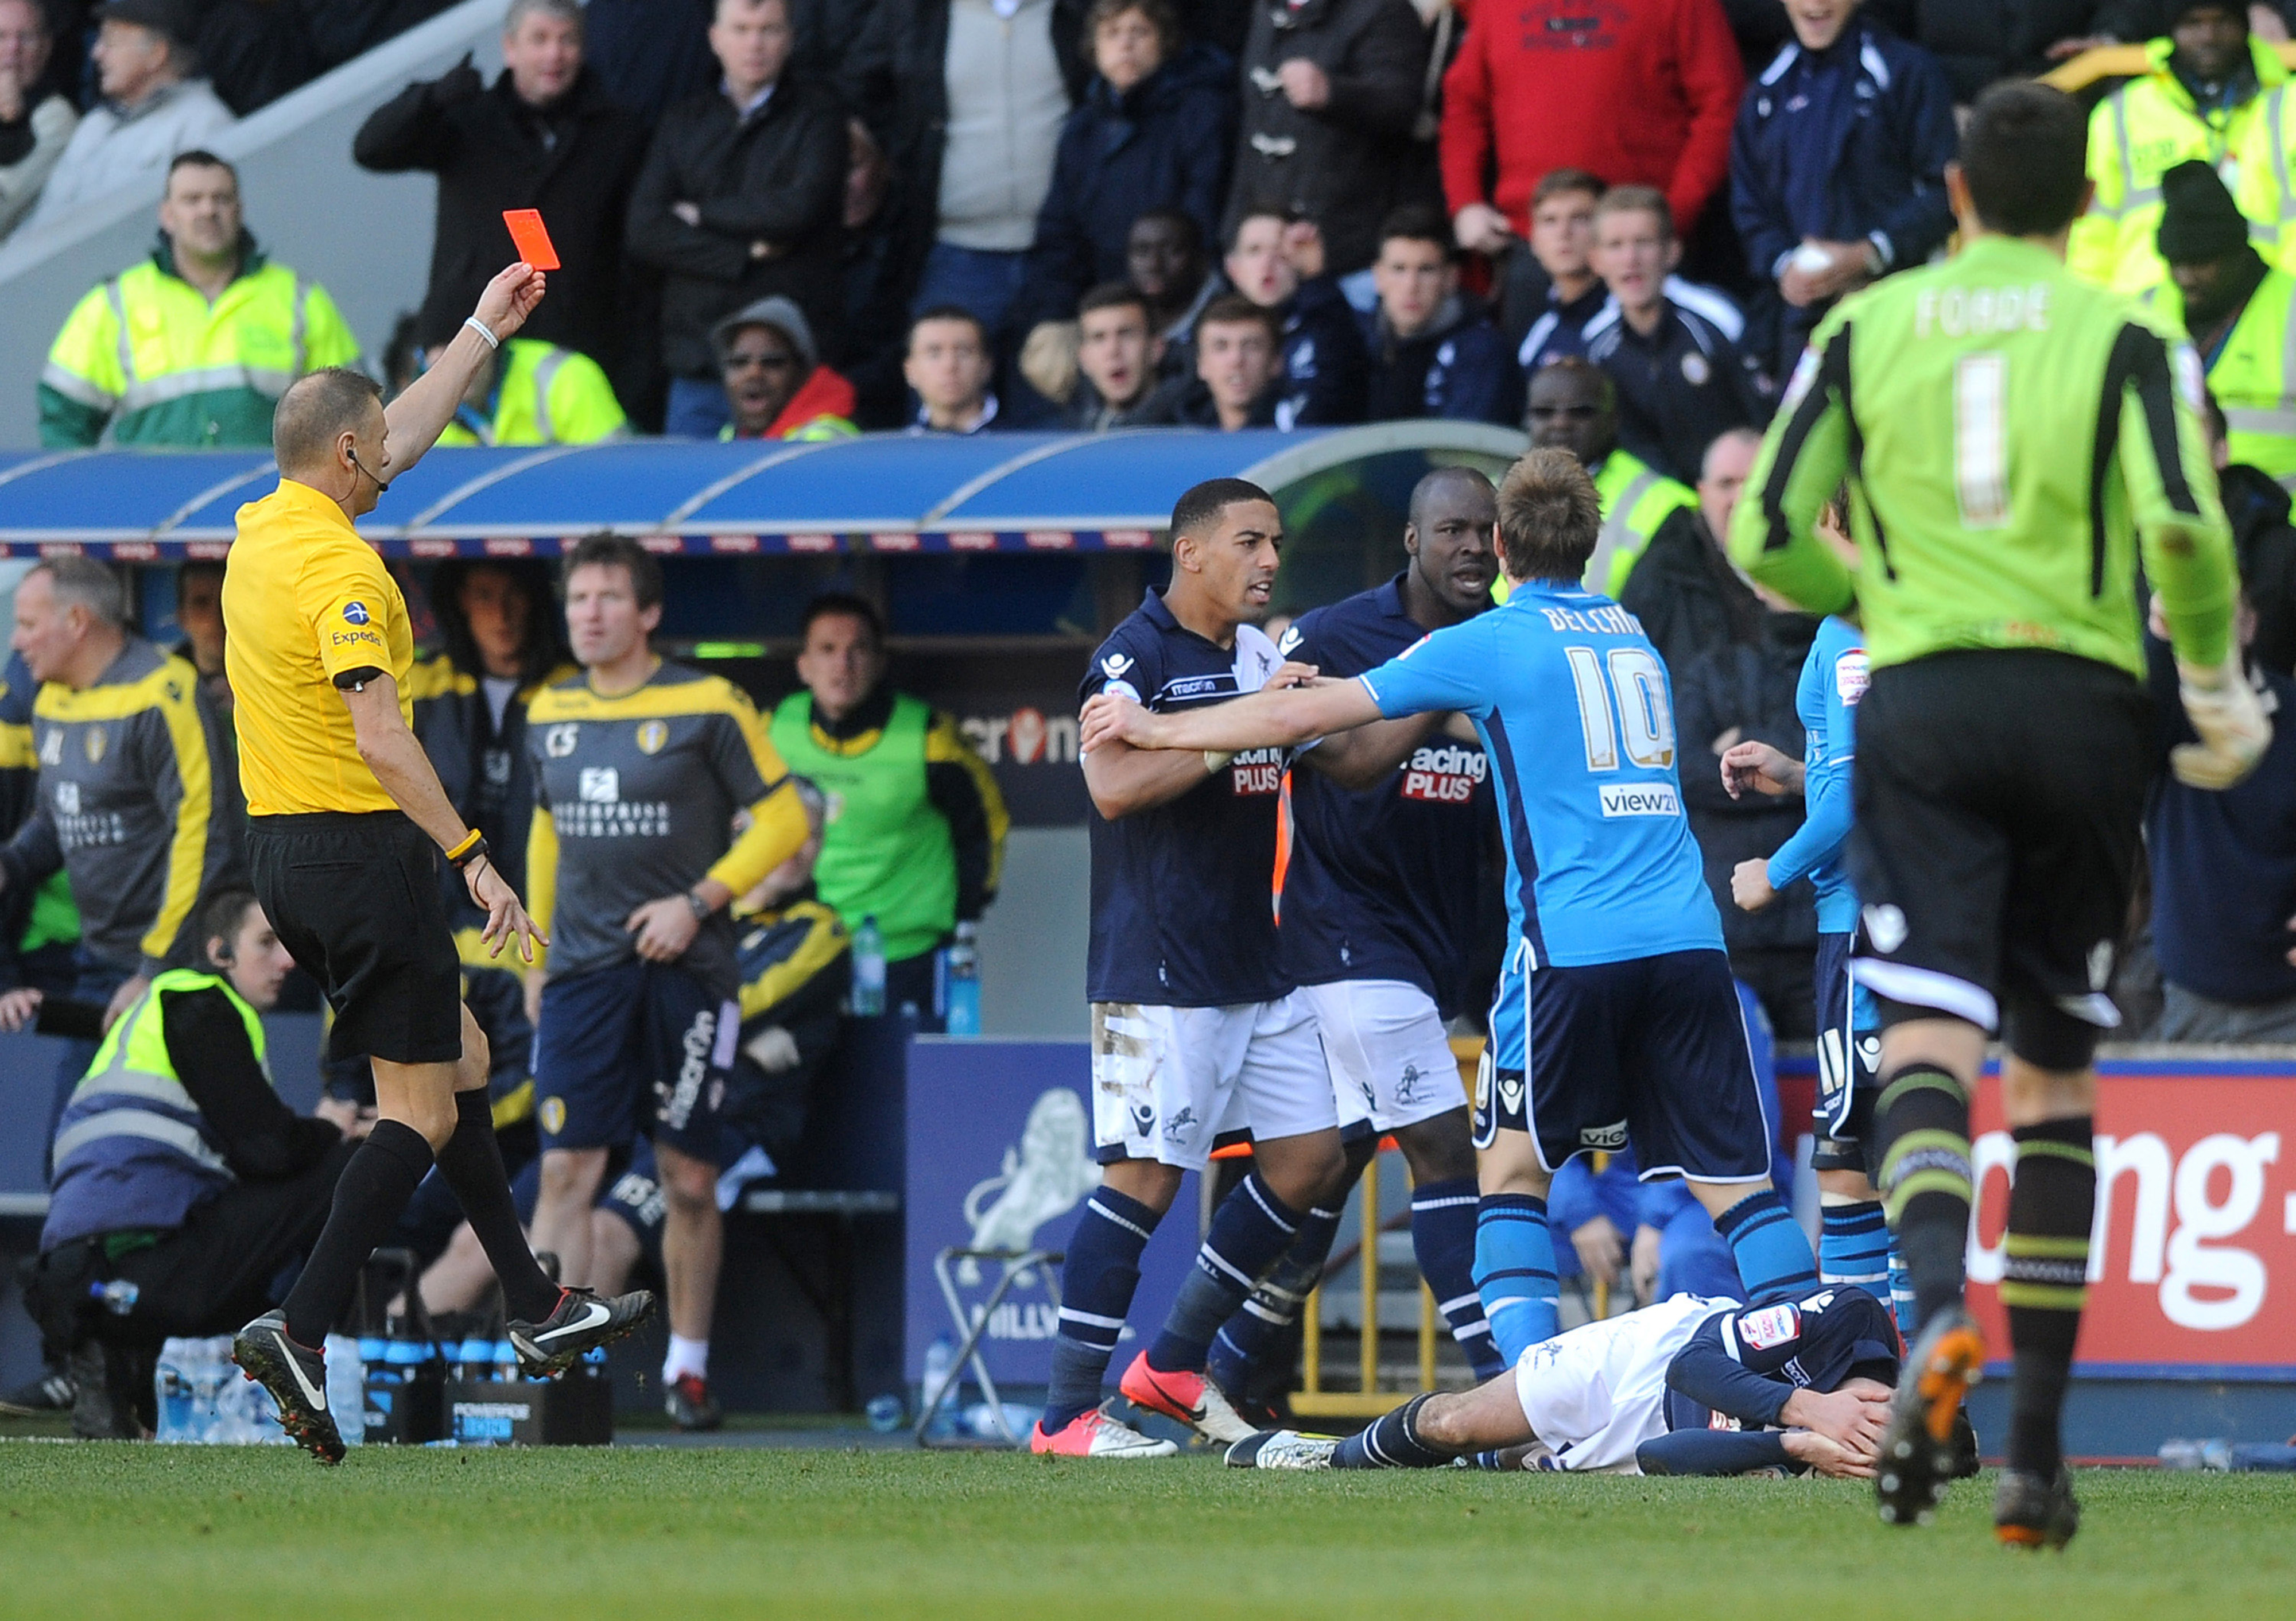 Luke Varney received a harsh red card thanks to the rolling around of Adam Smith, a former Leeds loanee.